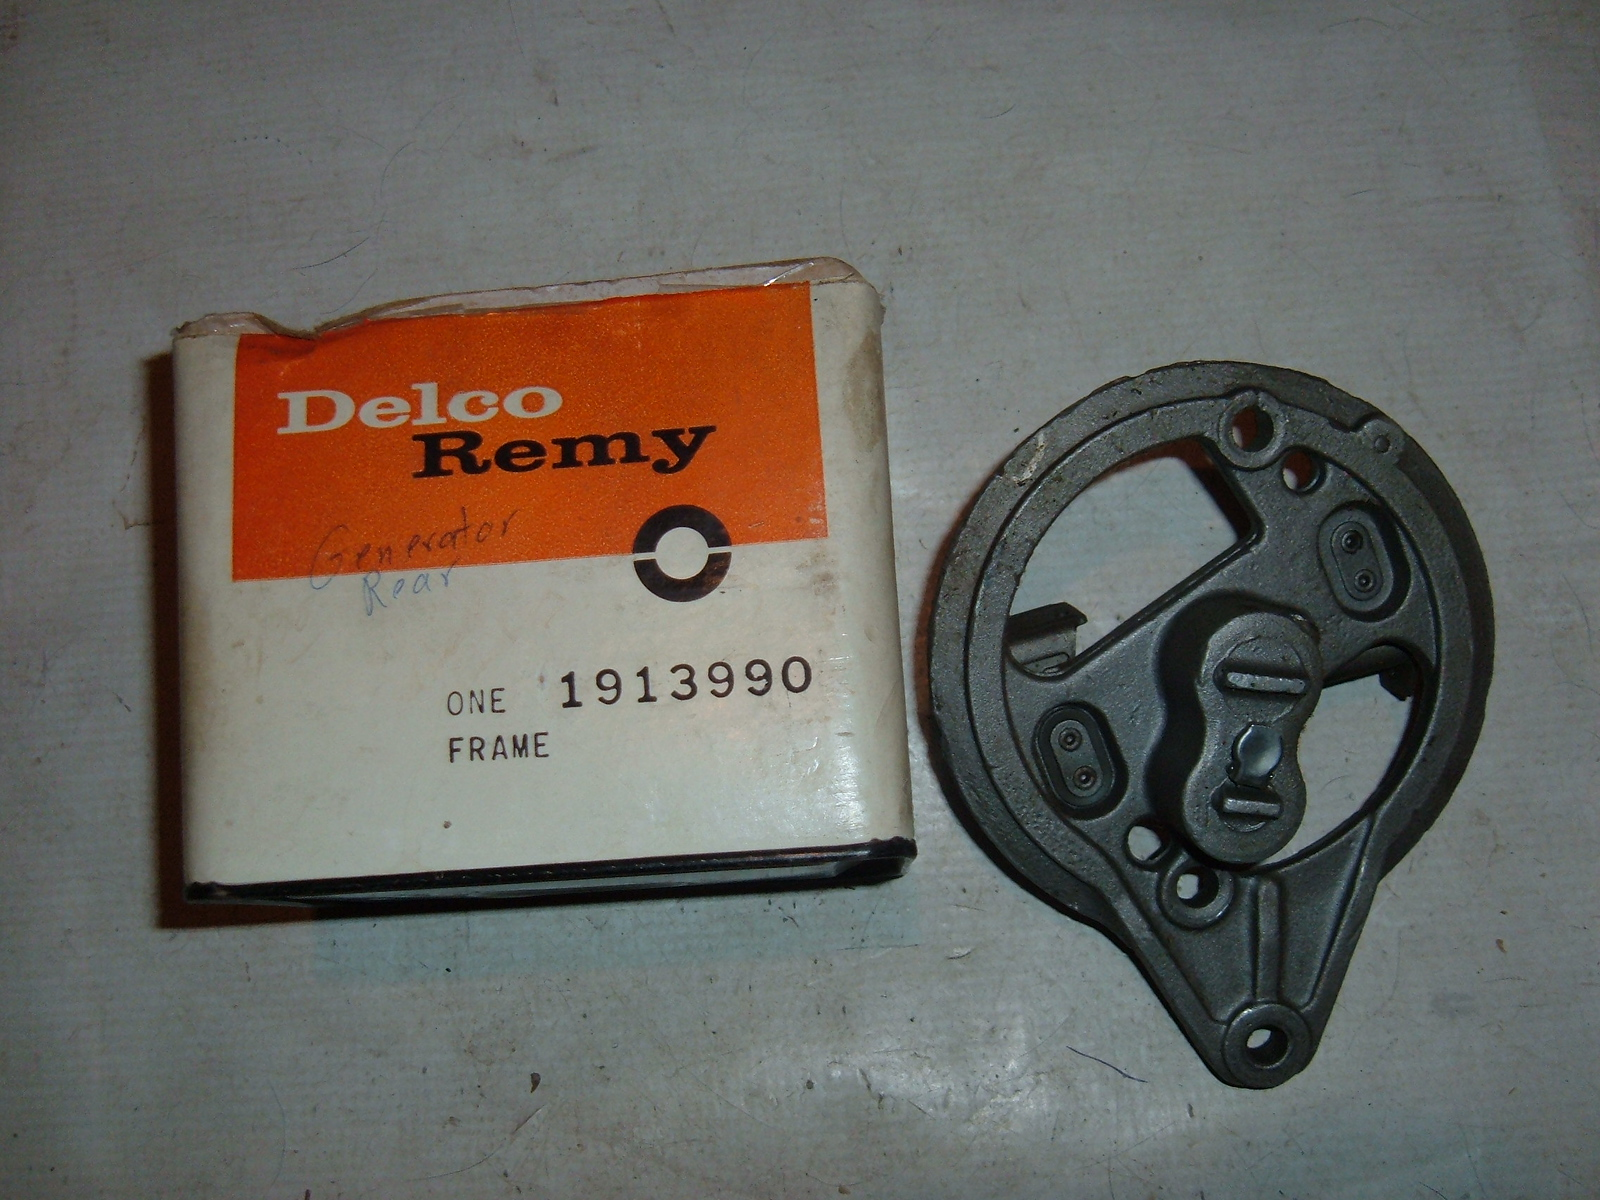 1938 40 42 46 48 50 52 chevrolet generator end frame nos gm 1913990 (z 1913990)